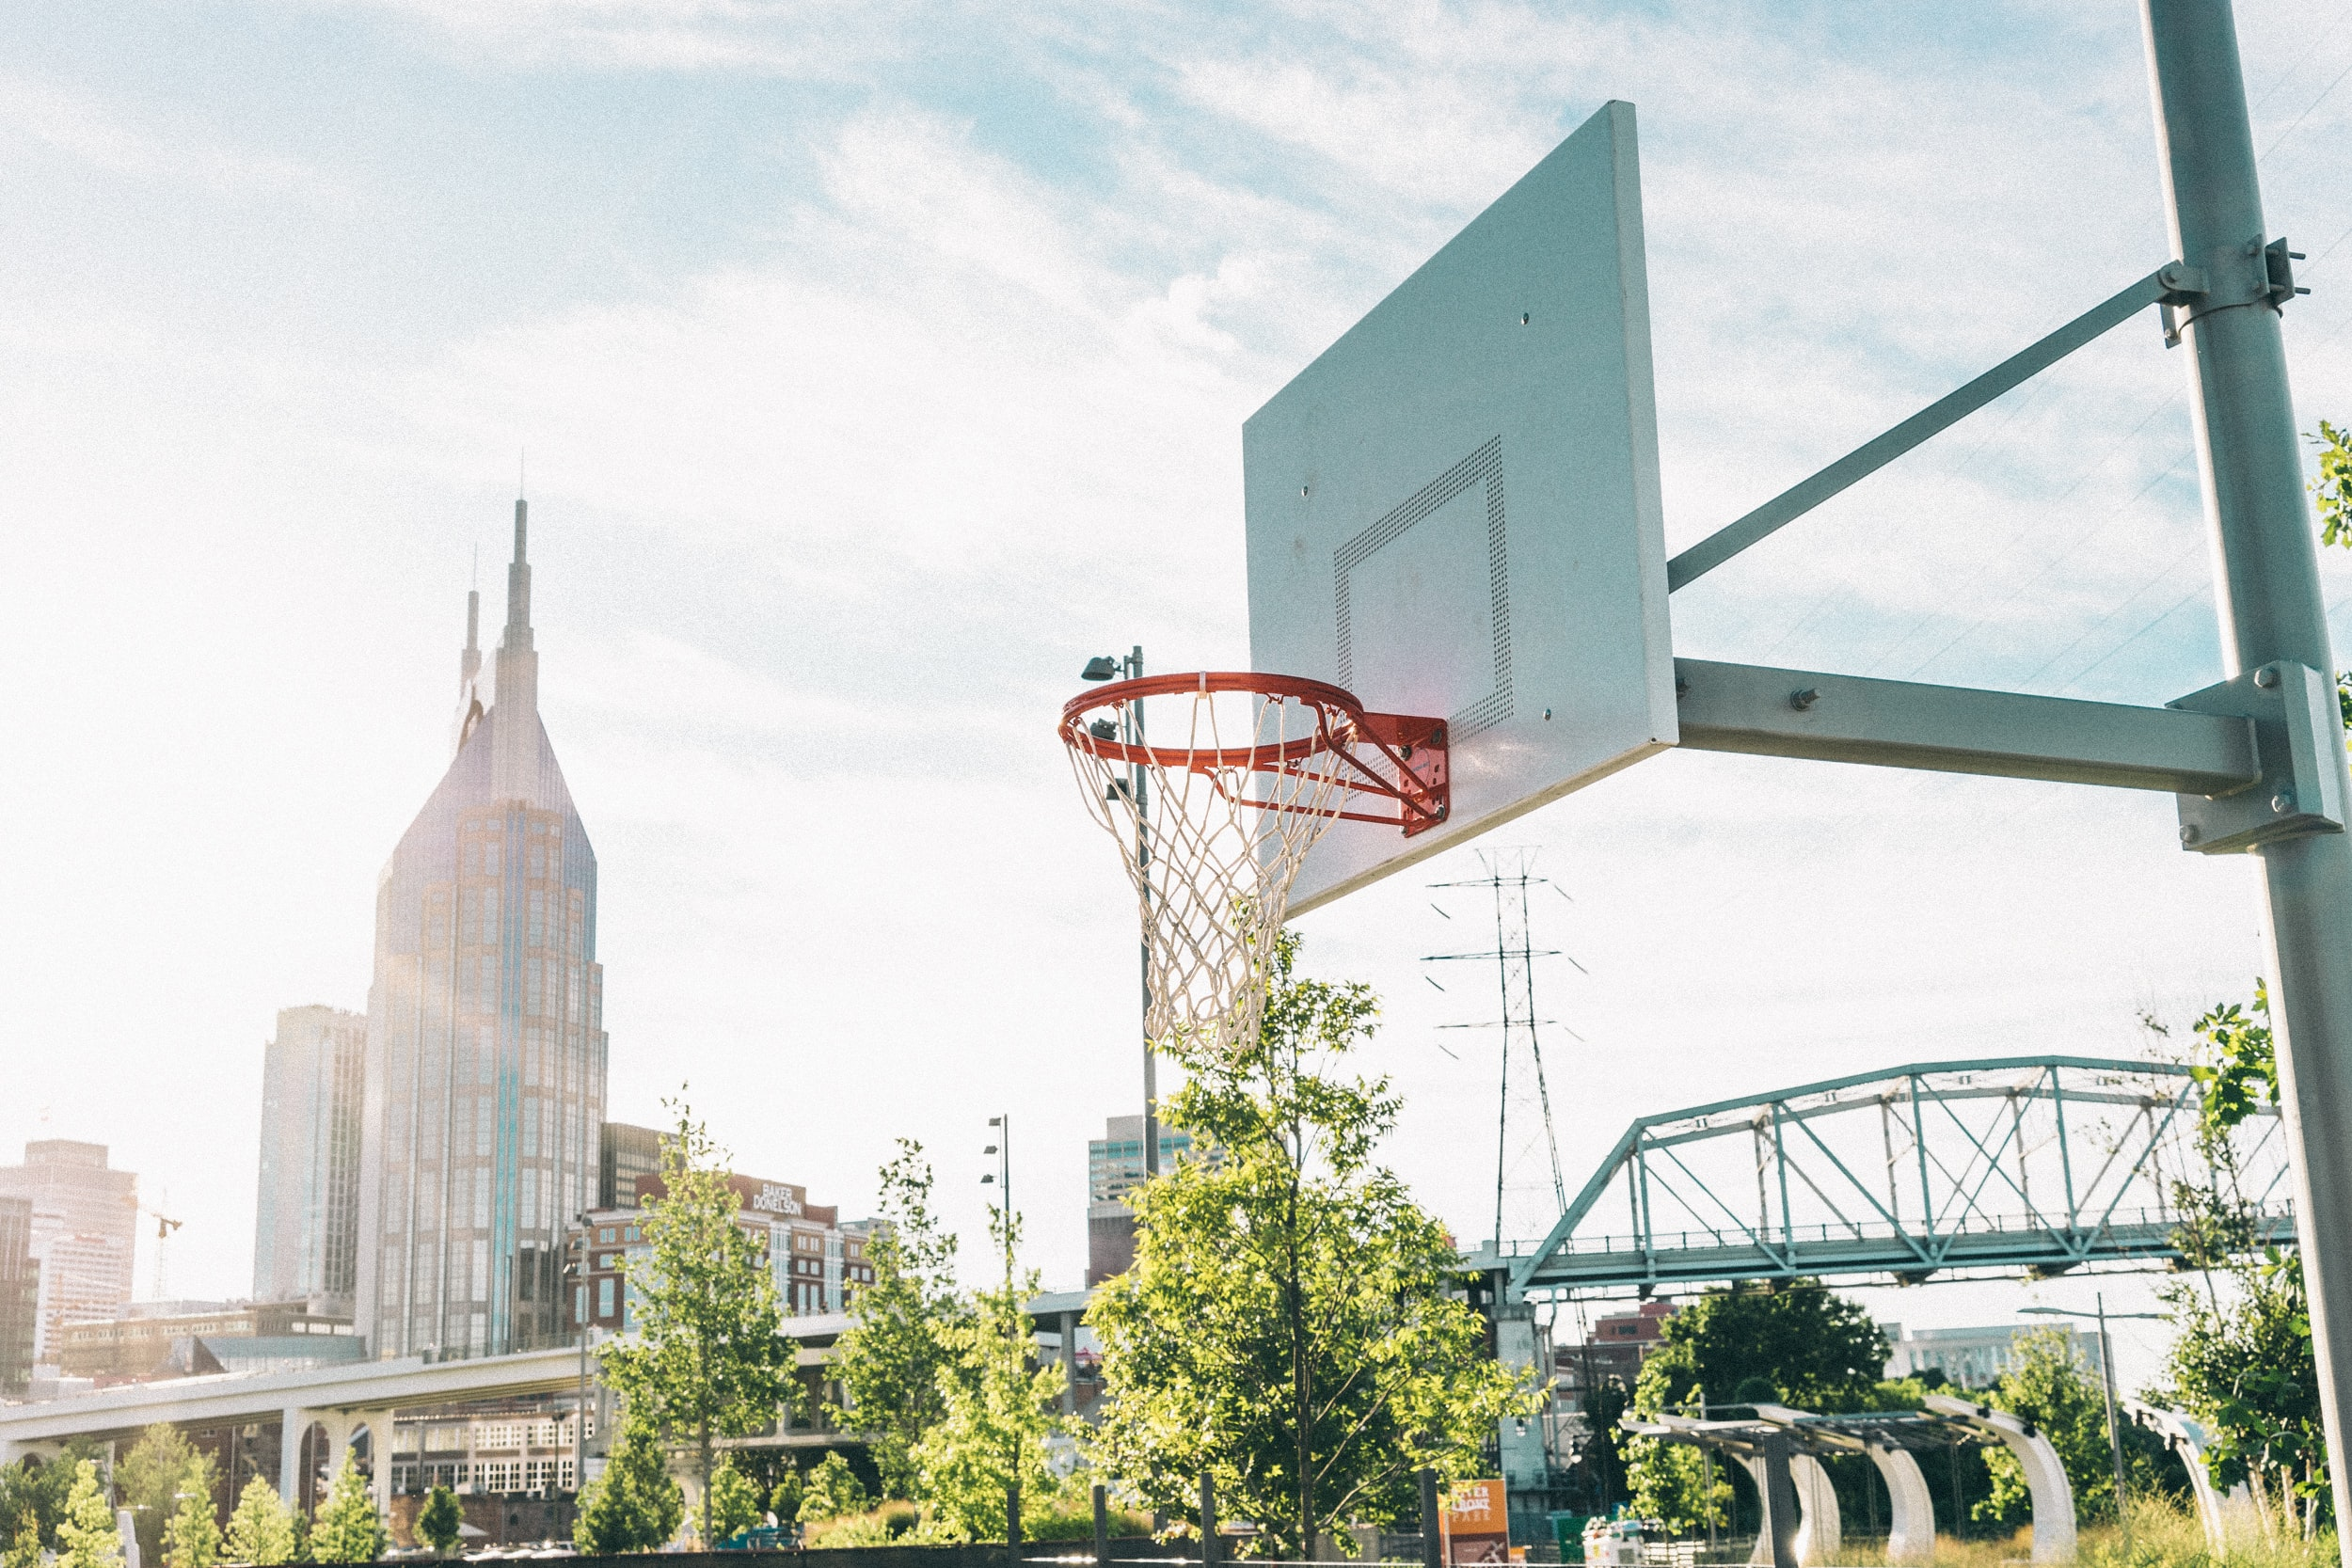 An outdoor basketball hoop with skyscrapers in the background in Nashville